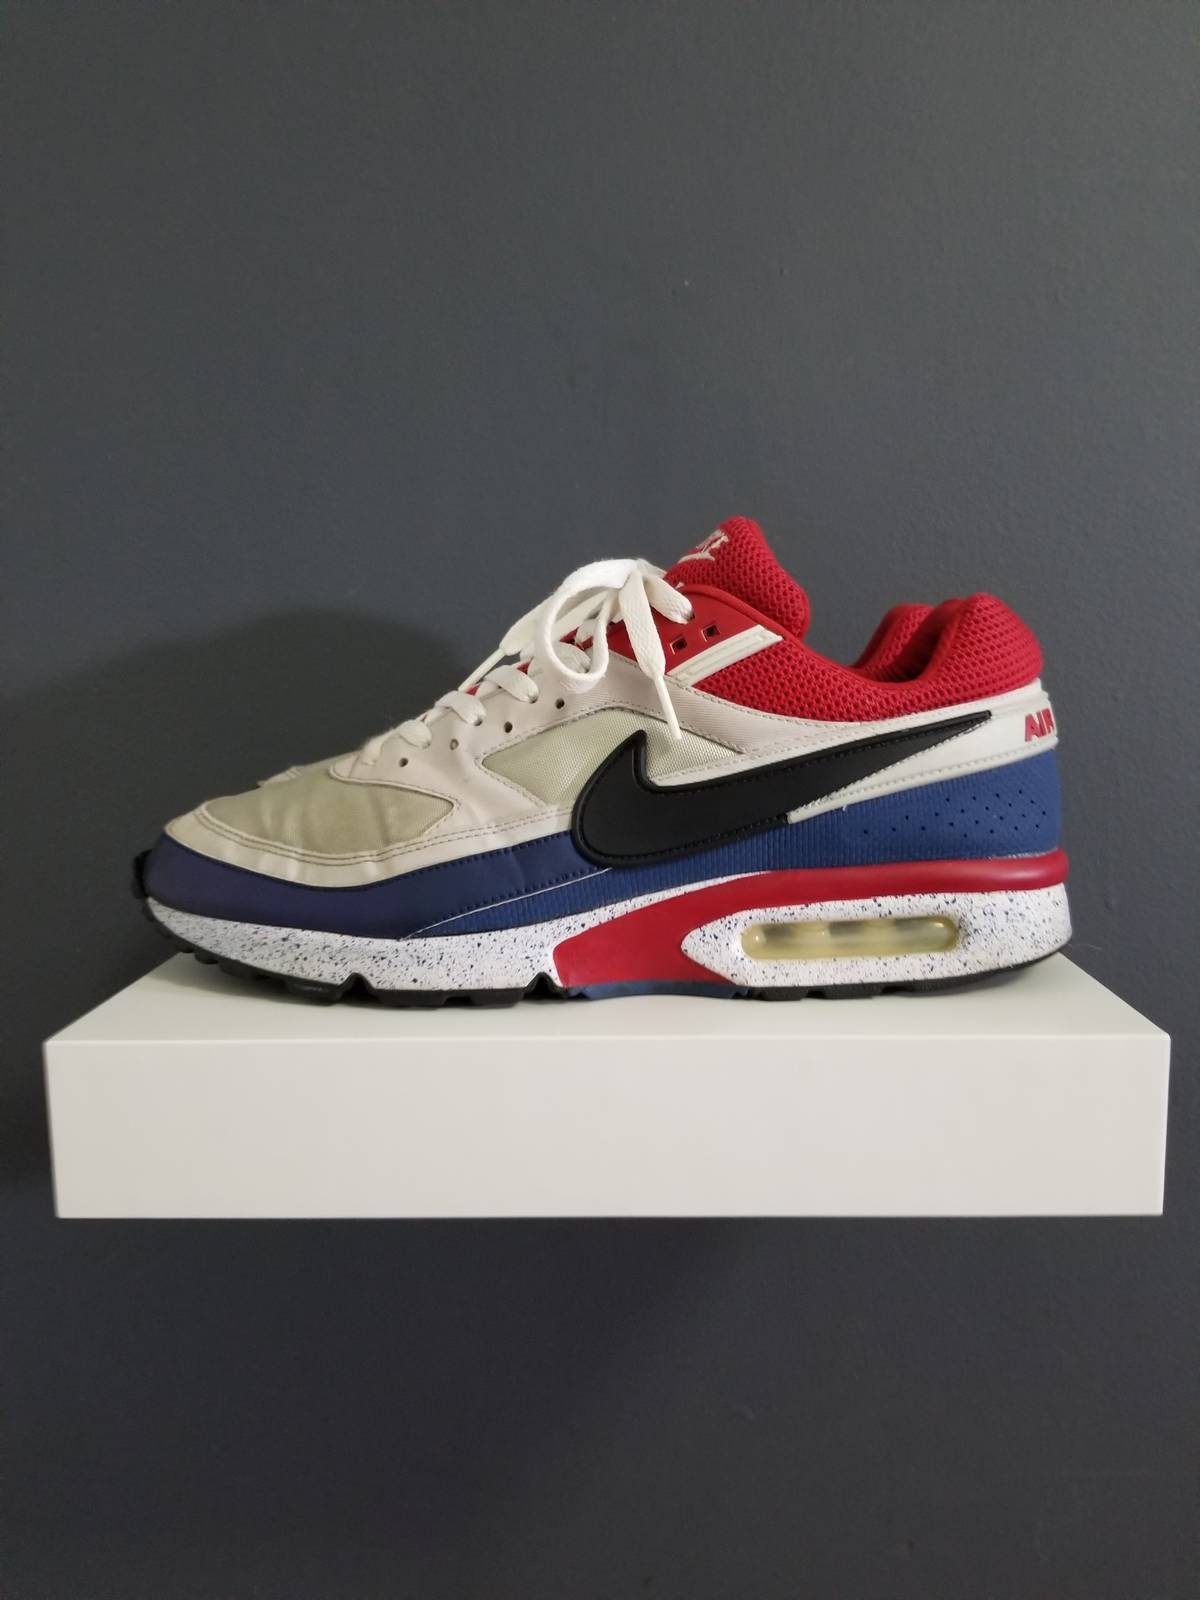 hot sale online 45e91 c6784 Nike Nike Air Max BW PSG READ DESCRIPTION Size 10.5 - Low-Top Sneakers  for Sale - Grailed